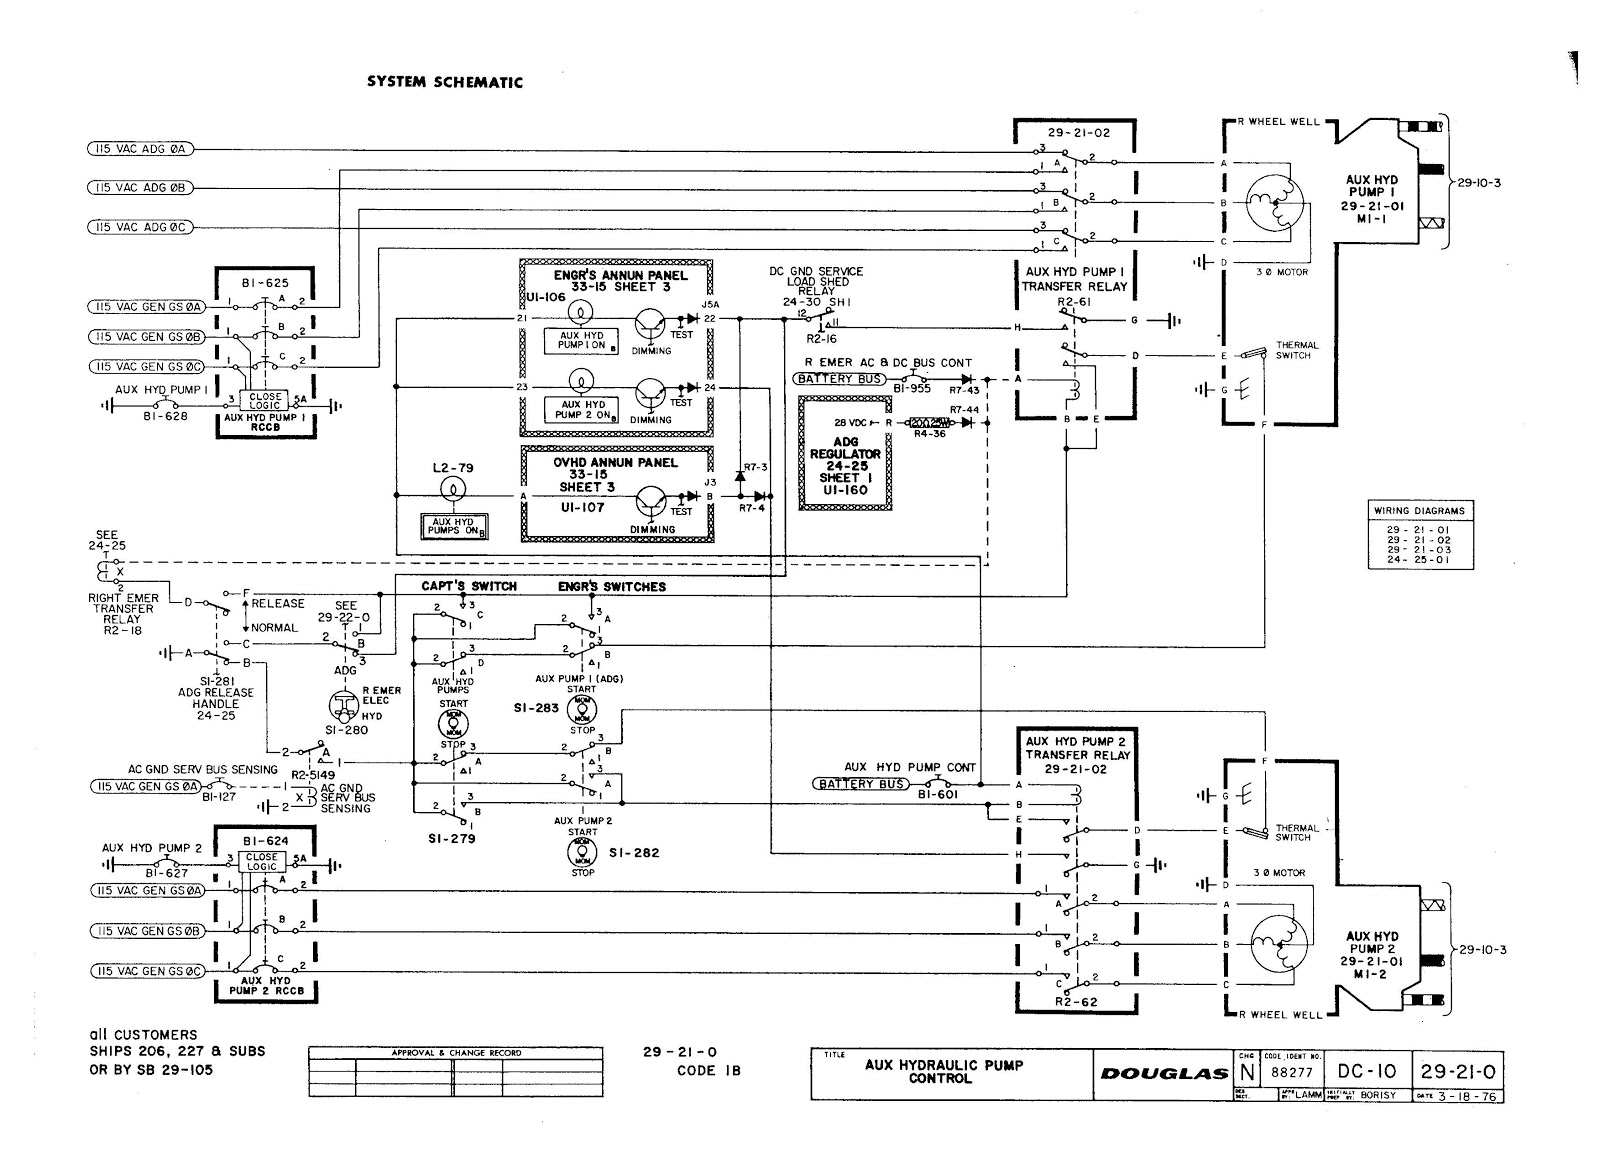 Schematic+diagram+dc+10+hydraulic+001 part 66 virtual school aircraft wiring and schematic diagrams reading wiring diagram at crackthecode.co